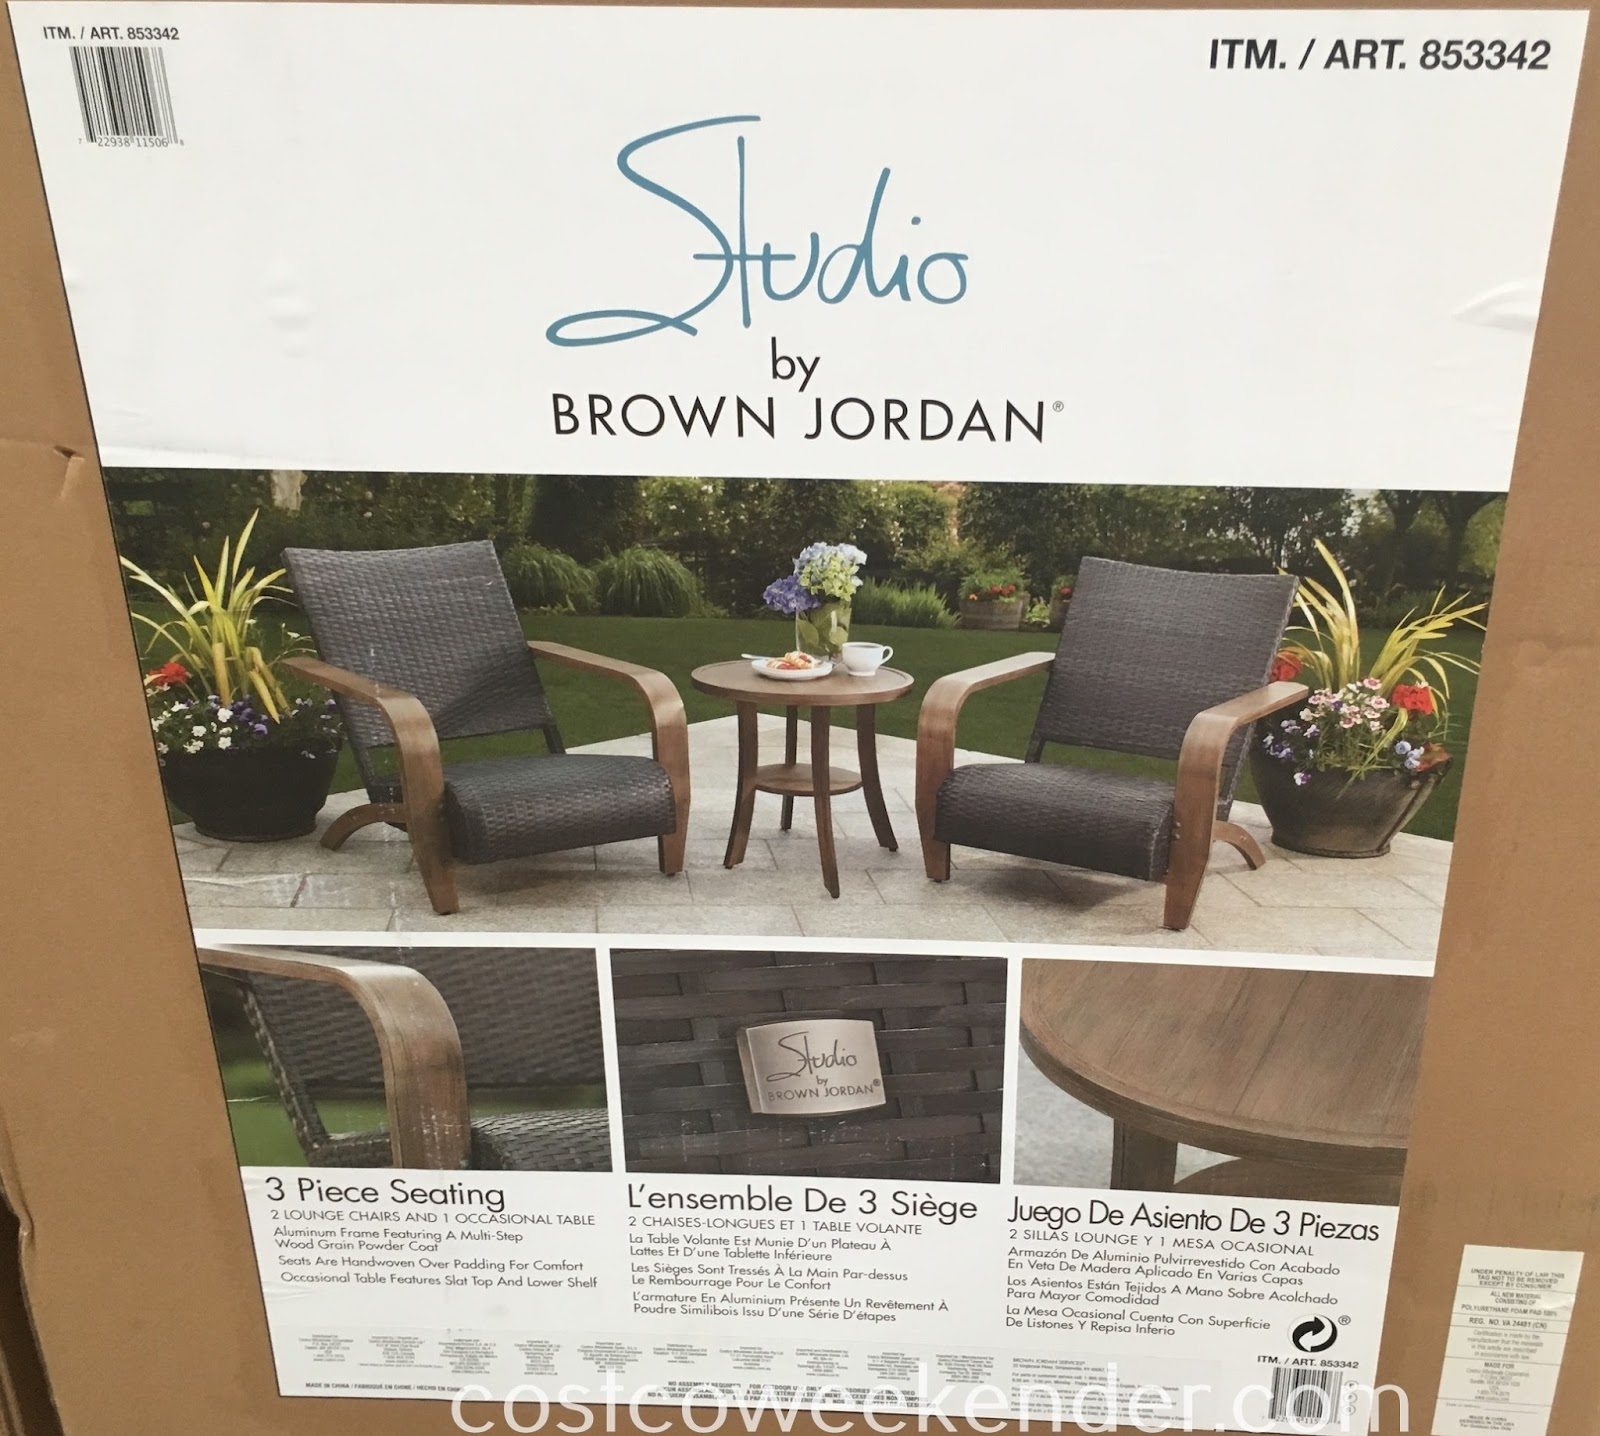 Costco 853342 - Studio by Brown Jordan 3pc Adirdondack Set: great for patio or backyard